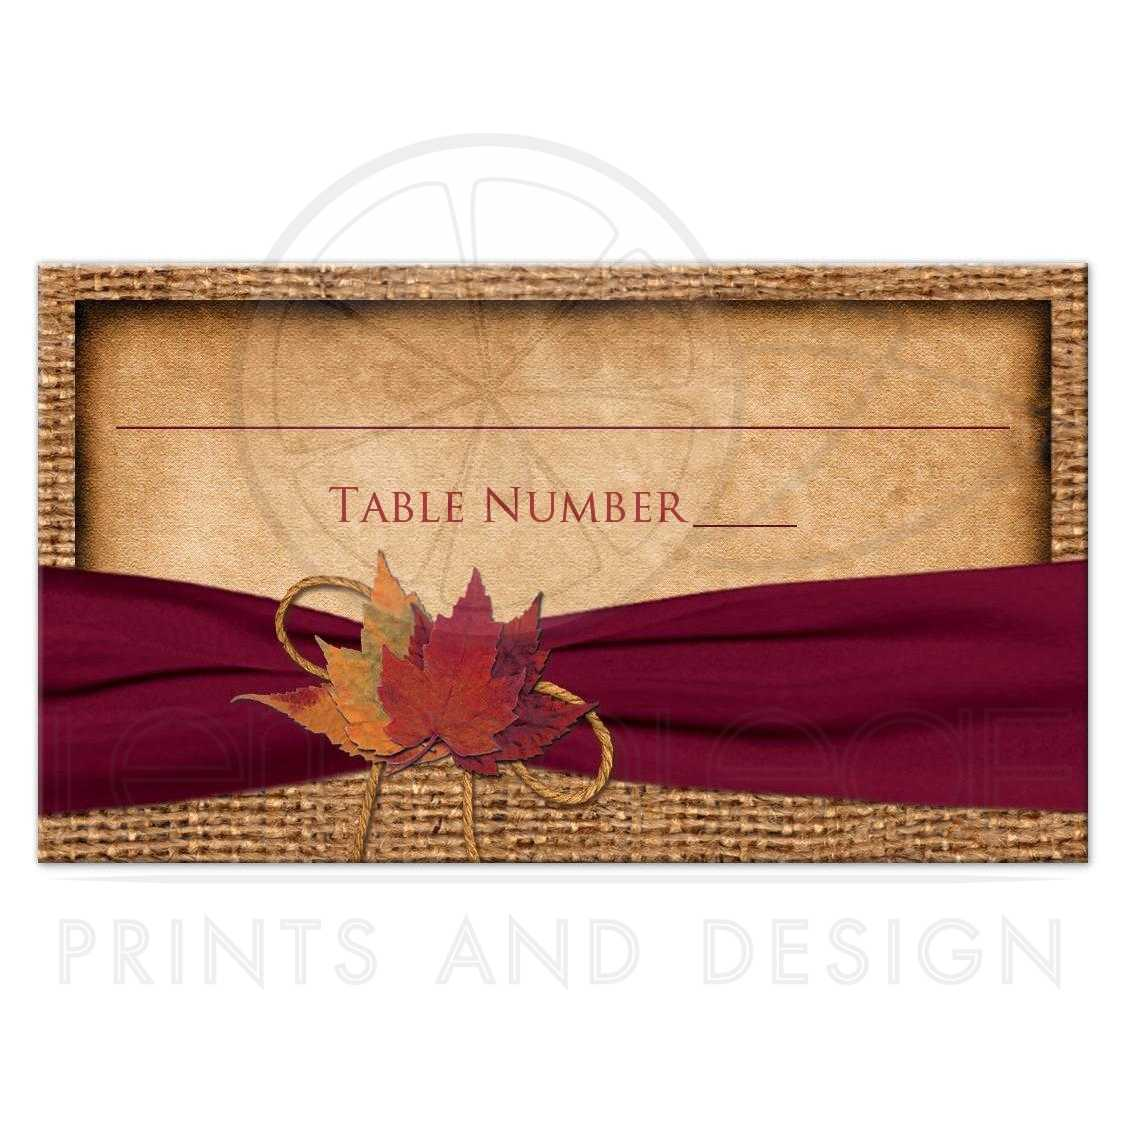 Affordable wedding place cards or escort cards